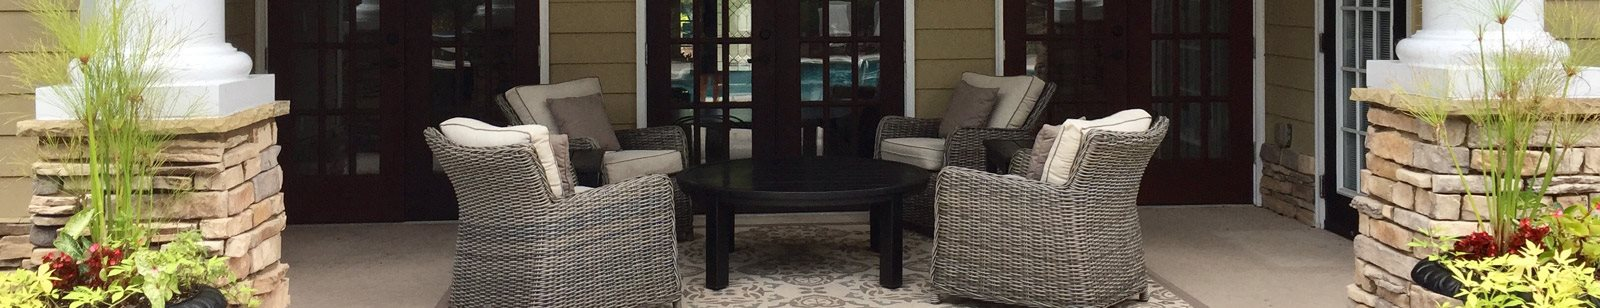 Gorgeous outdoor patio area with conversational seating area at Legends at Charleston Park Apartments, North Charleston, SC, 29420